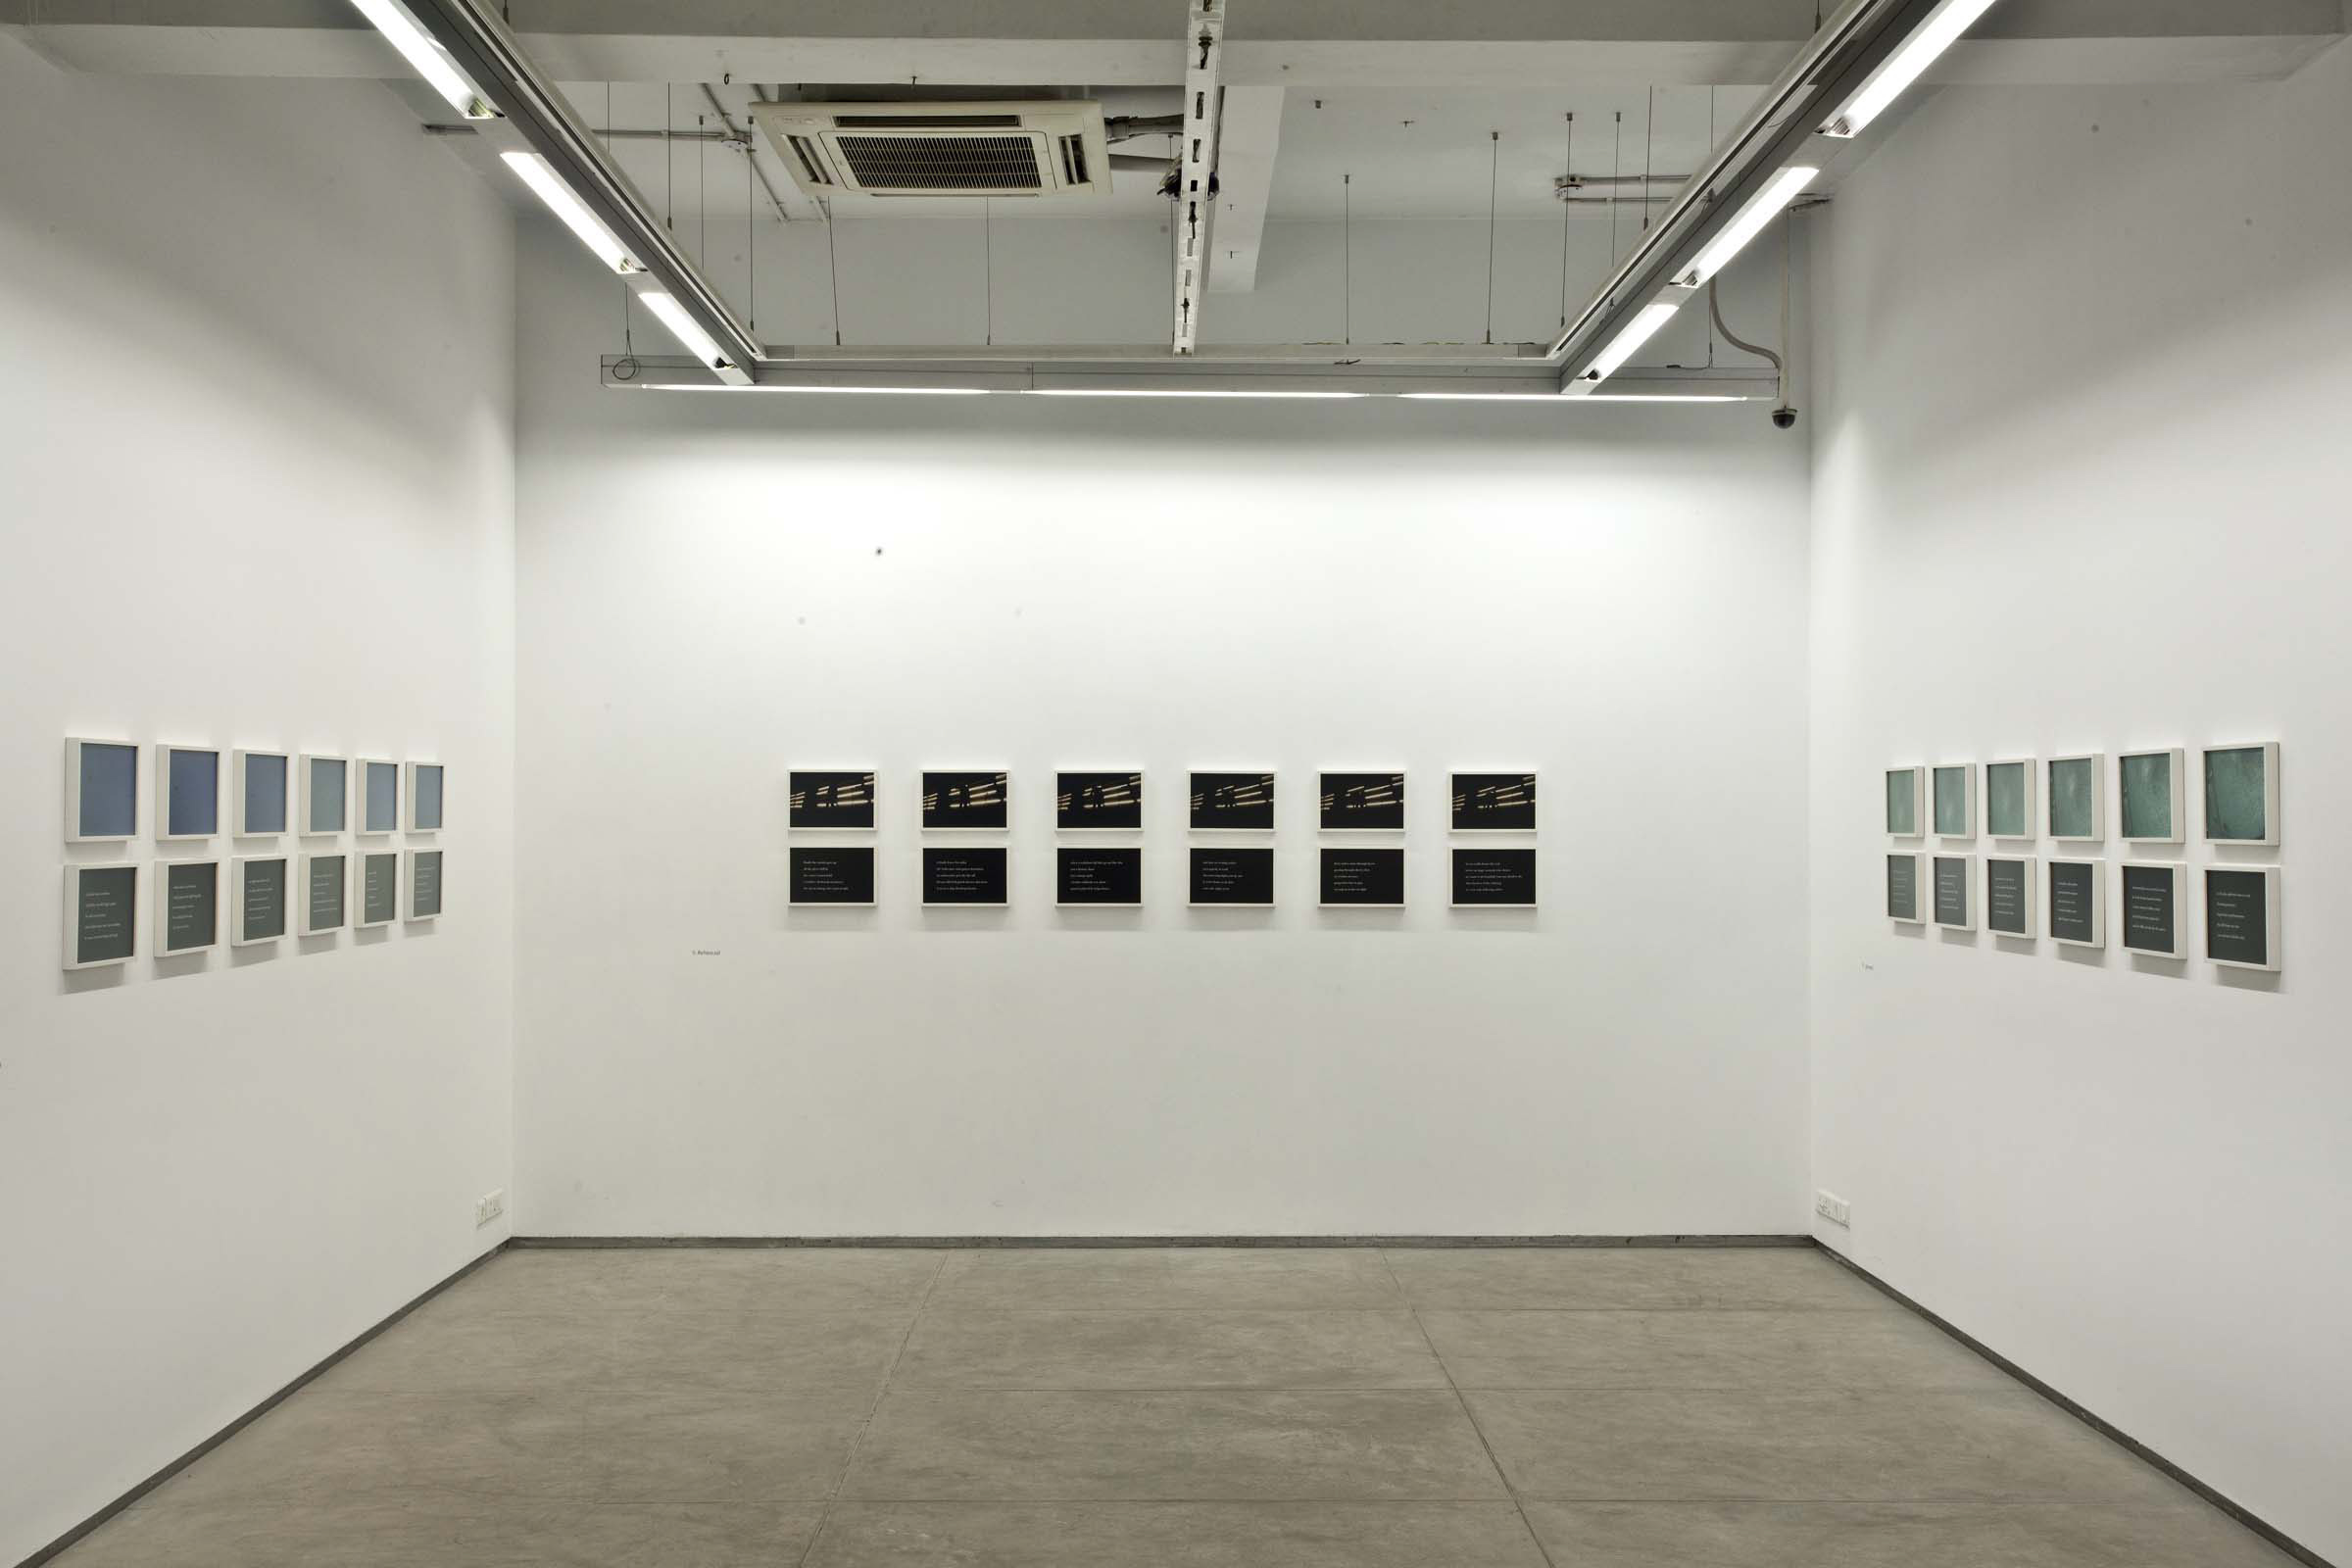 Installation View, Experimenter.